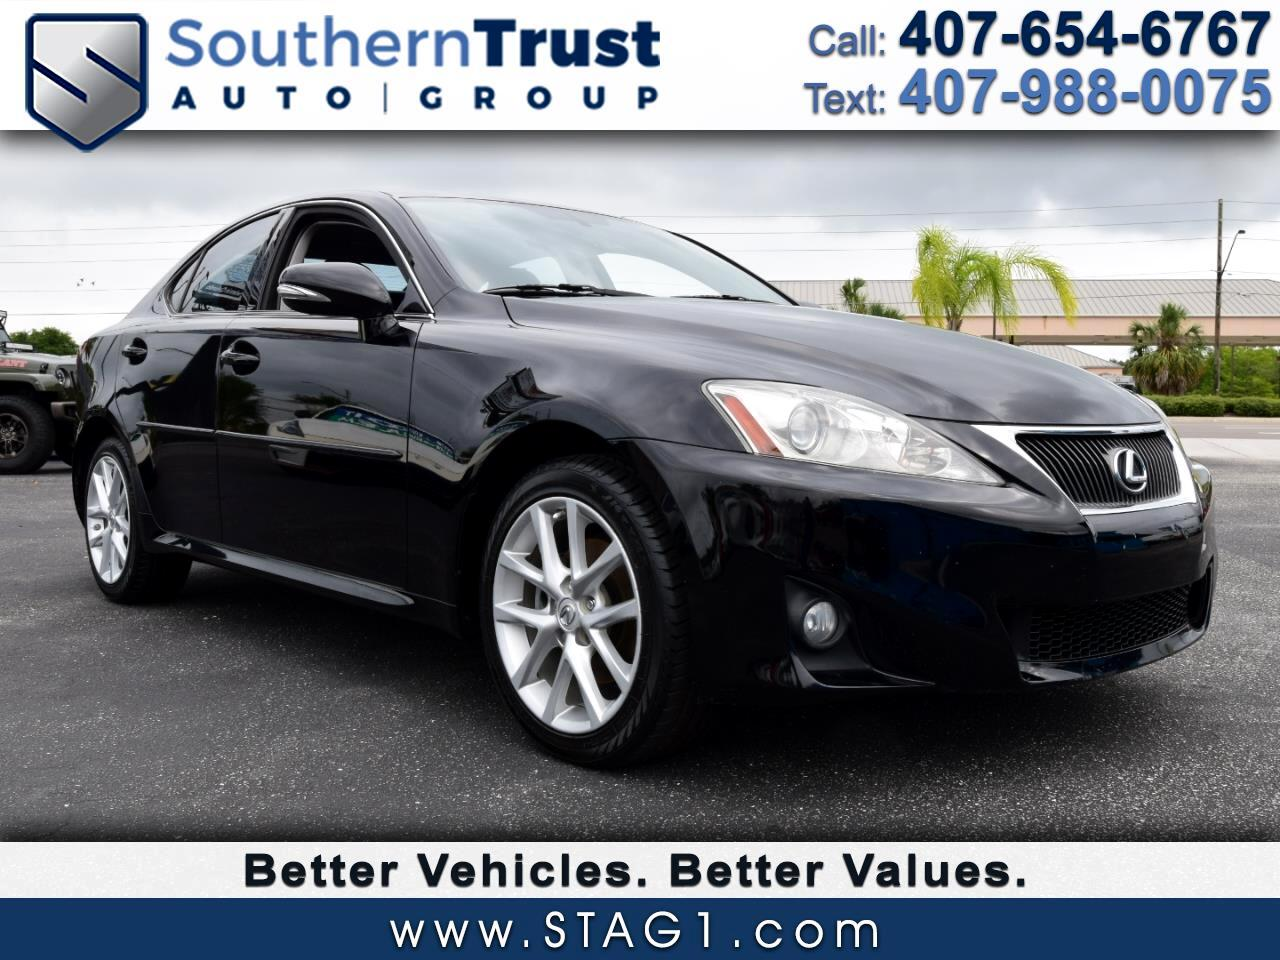 2011 Lexus IS 250 4dr Sport Sdn Auto AWD